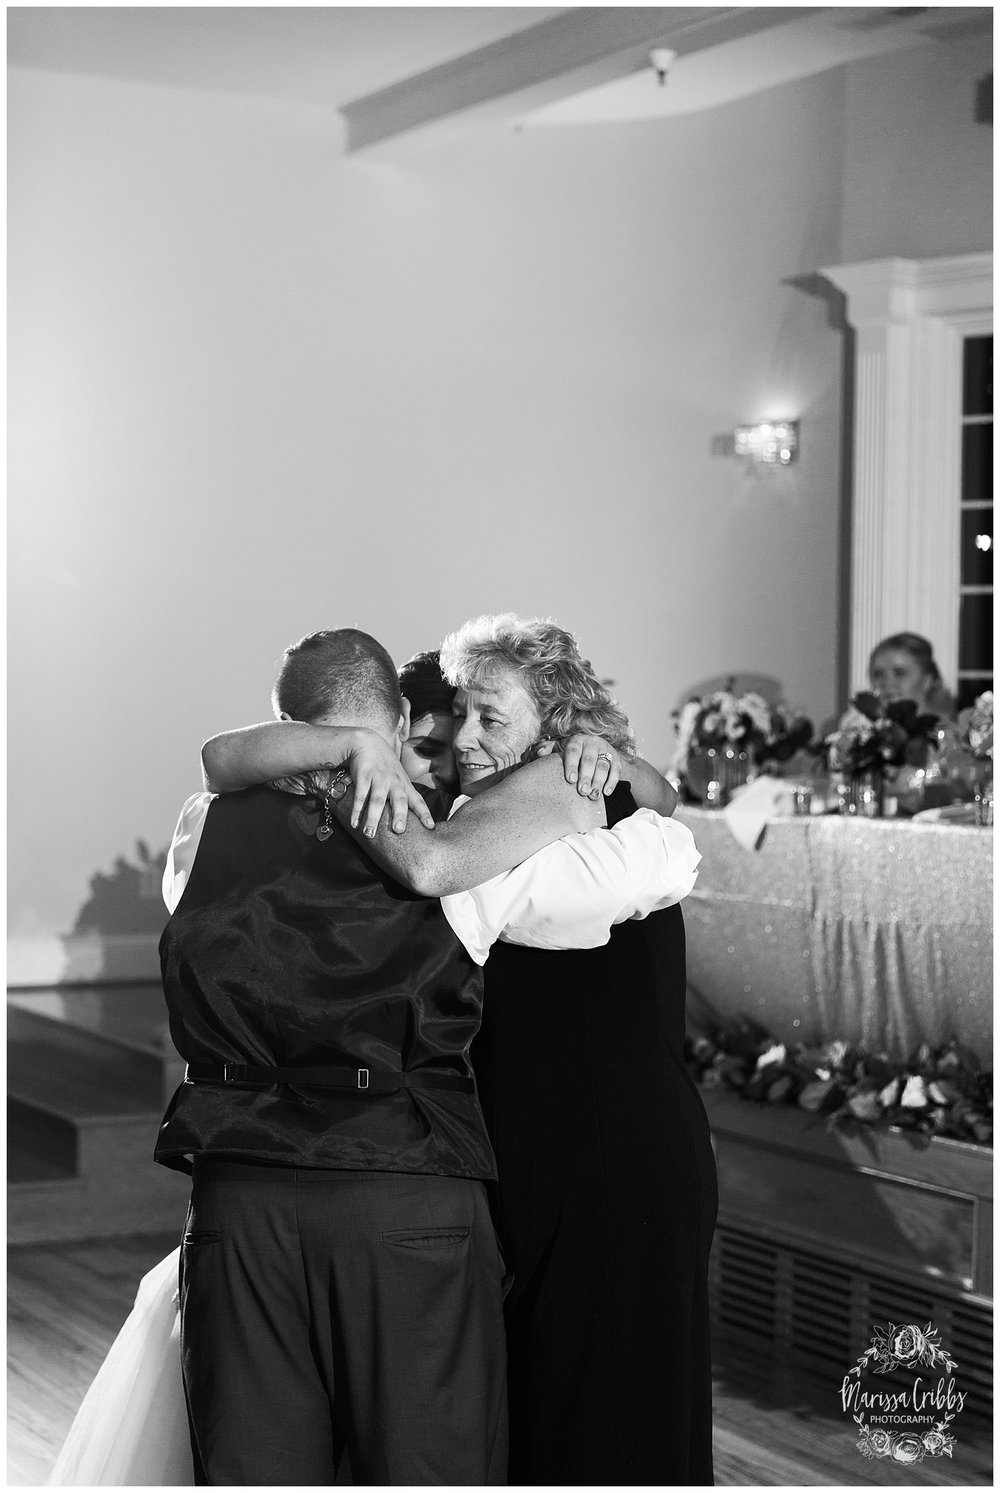 DANI & MICHAEL MARRIED | HAWTHORNE HOUSE WEDDING | MARISSA CRIBBS PHOTOGRAPHY_2705.jpg